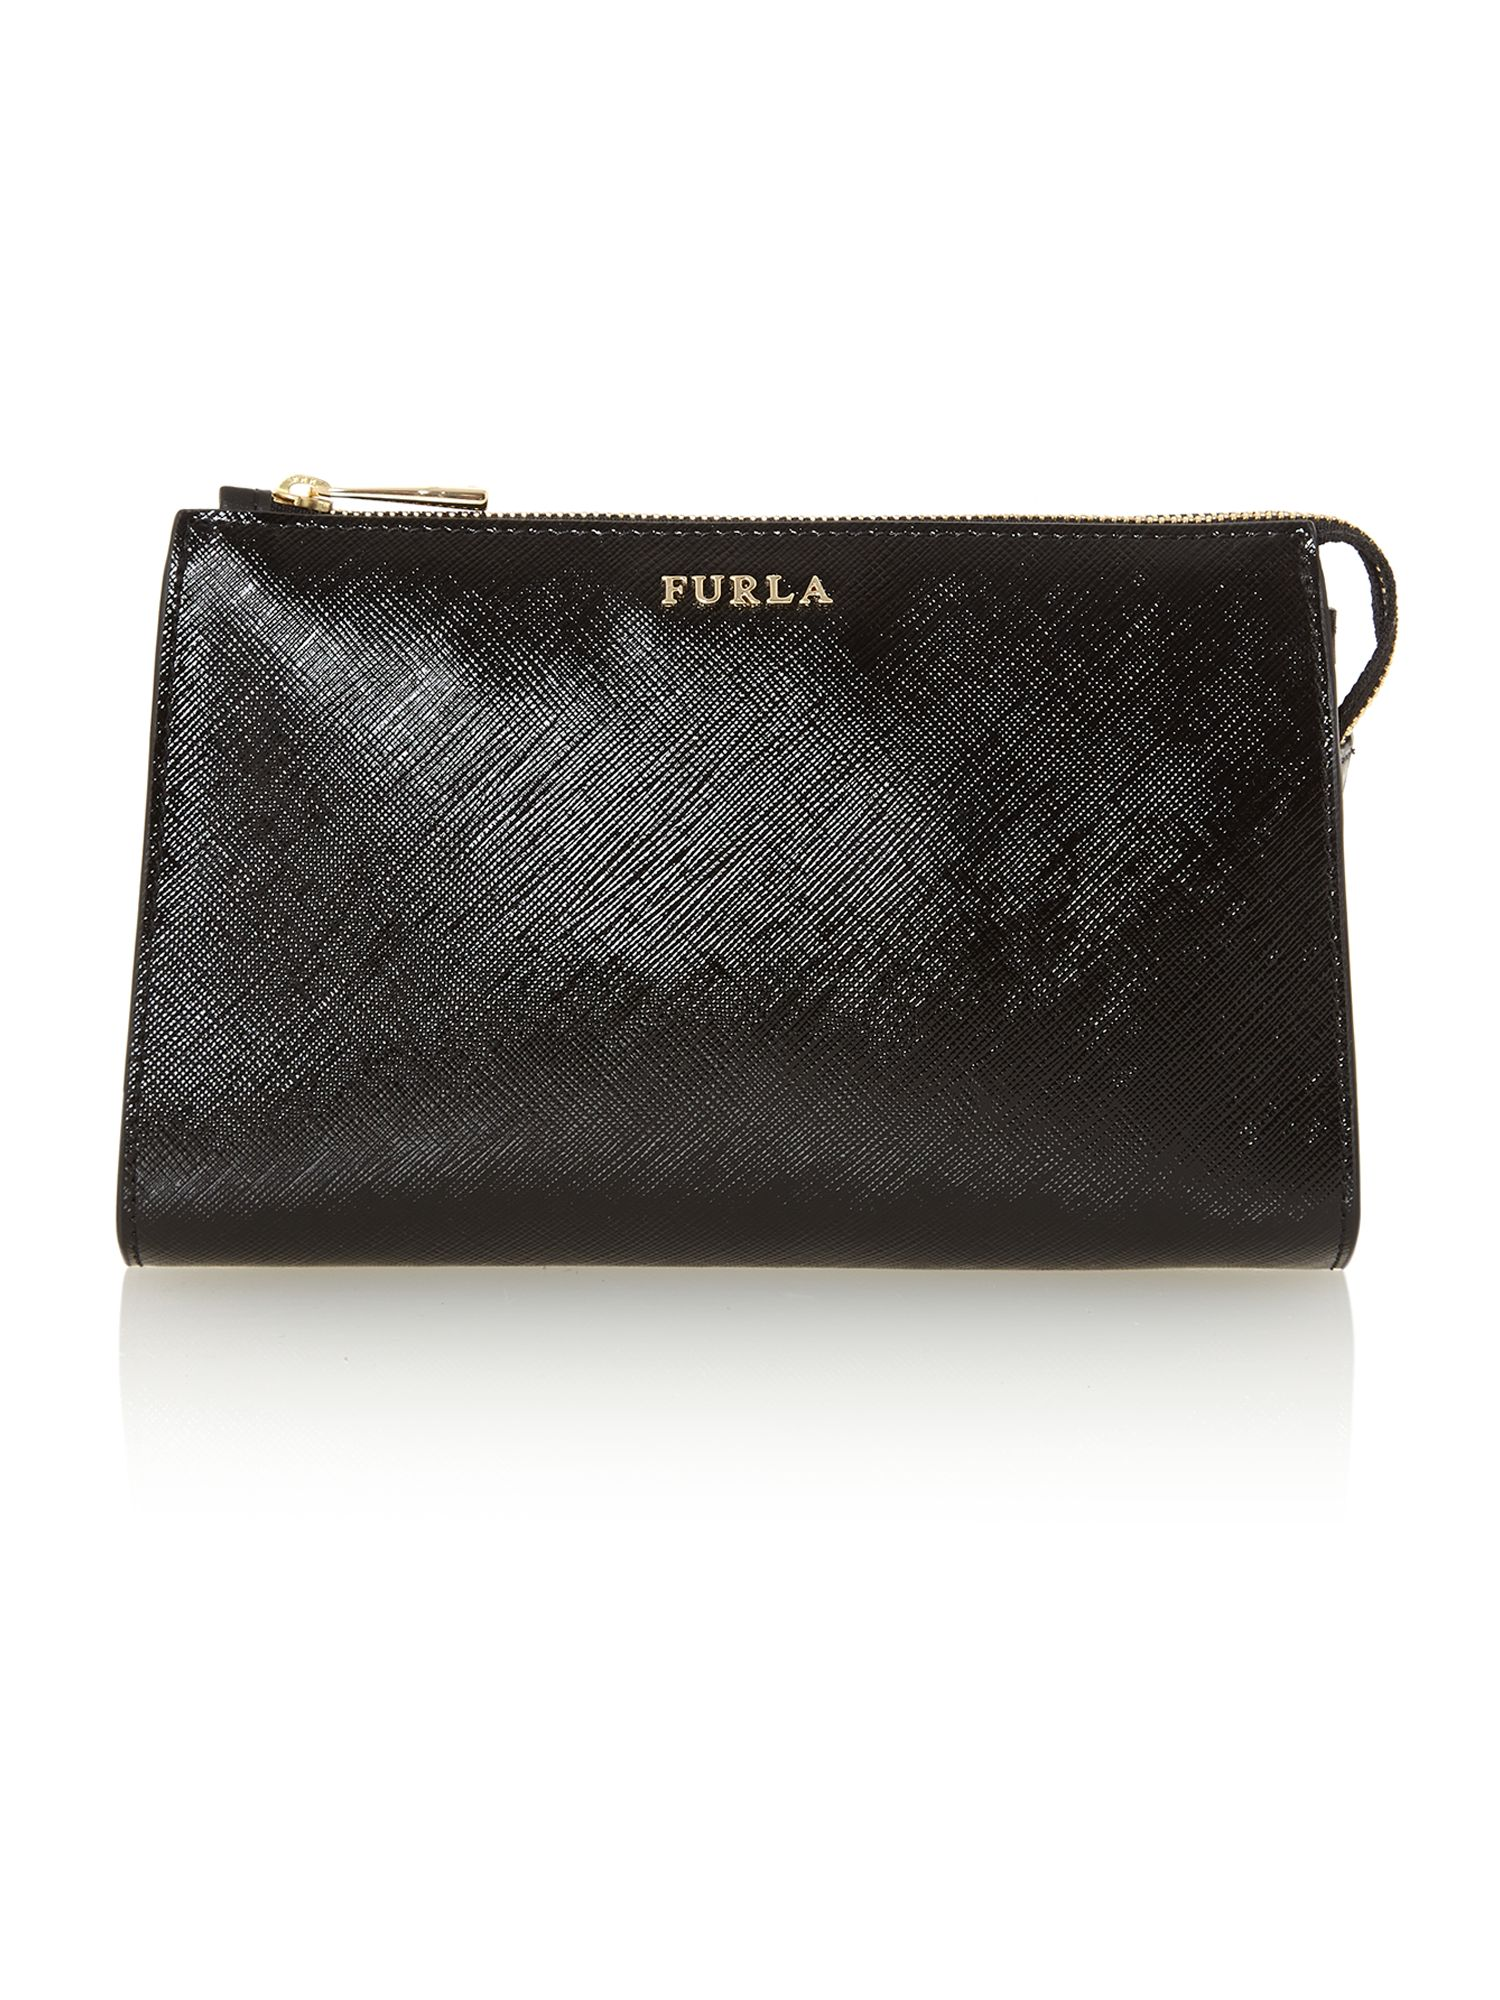 Eden black small cross body bag